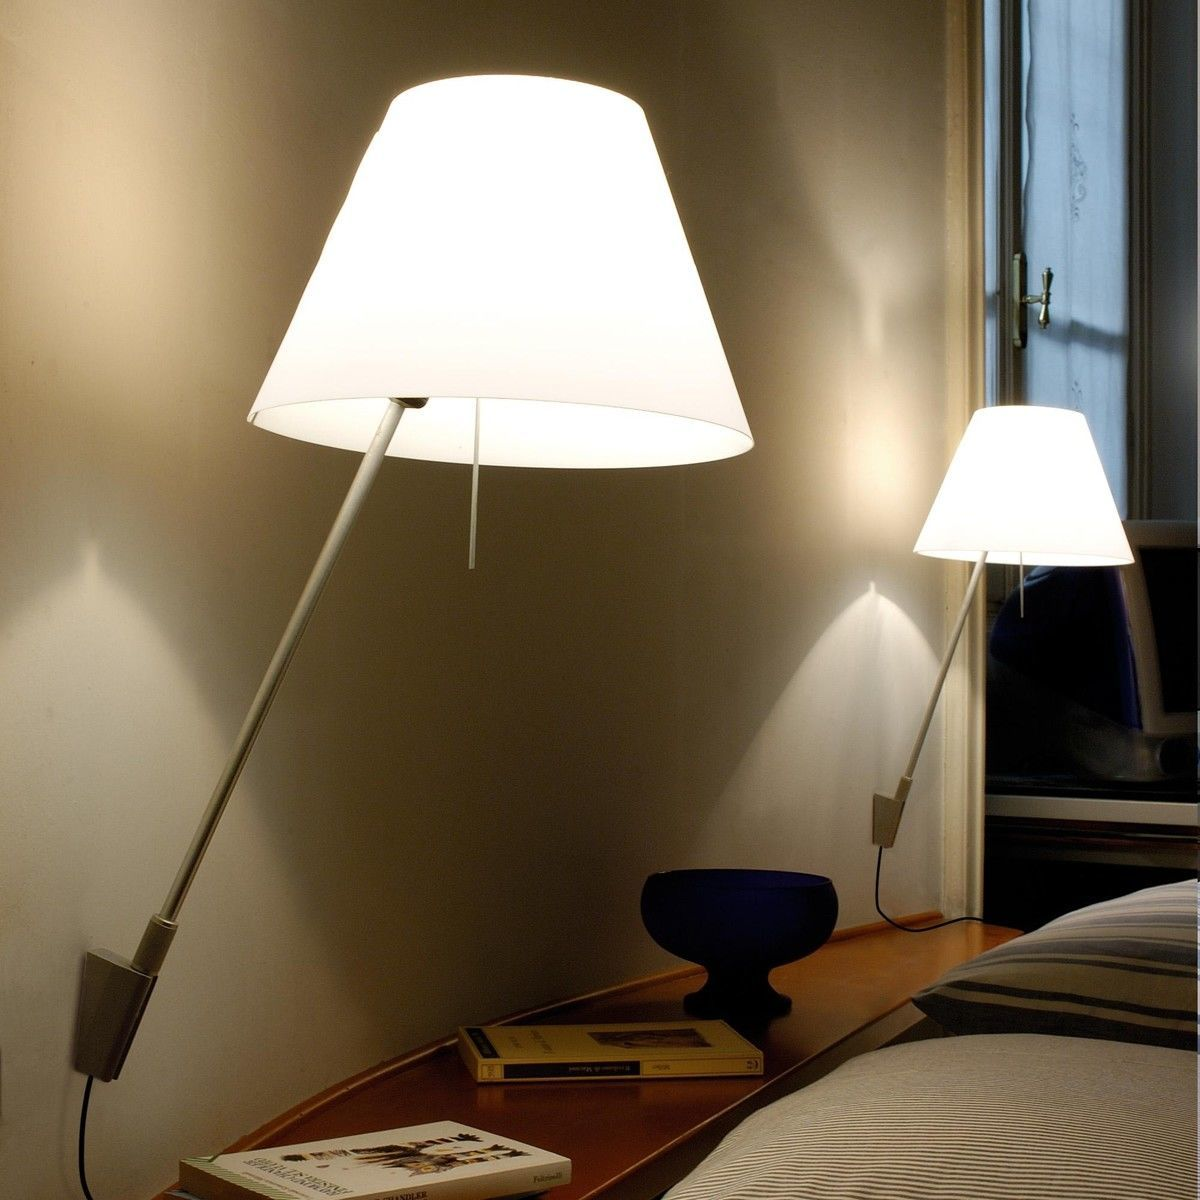 Costanzina Parete Wall Lamp Luceplan AmbienteDirect.com